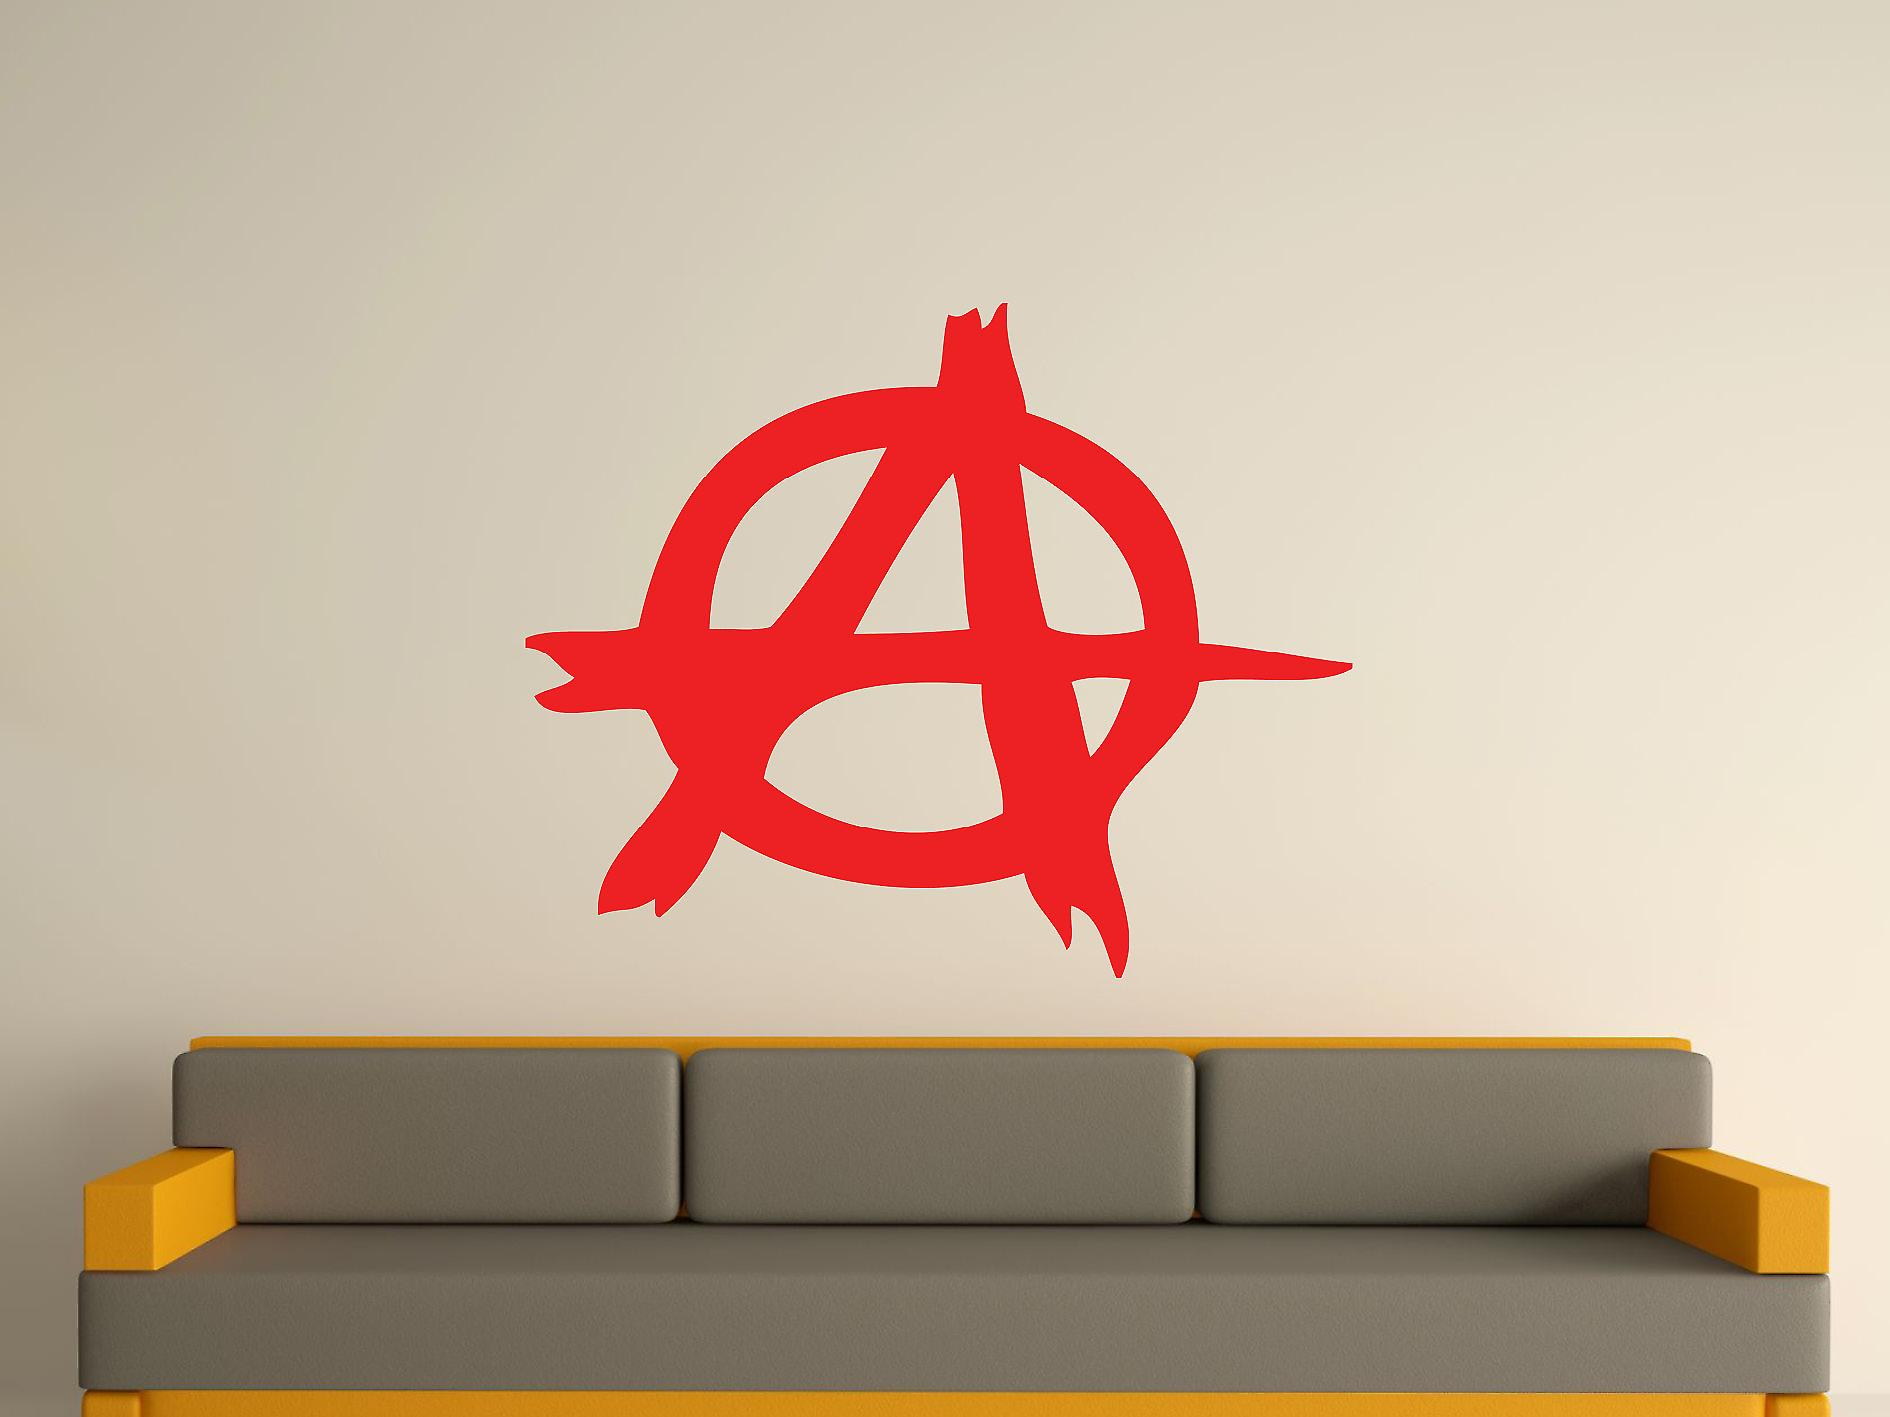 Anarchy Symbol Wall Art Sticker - Tomato Red